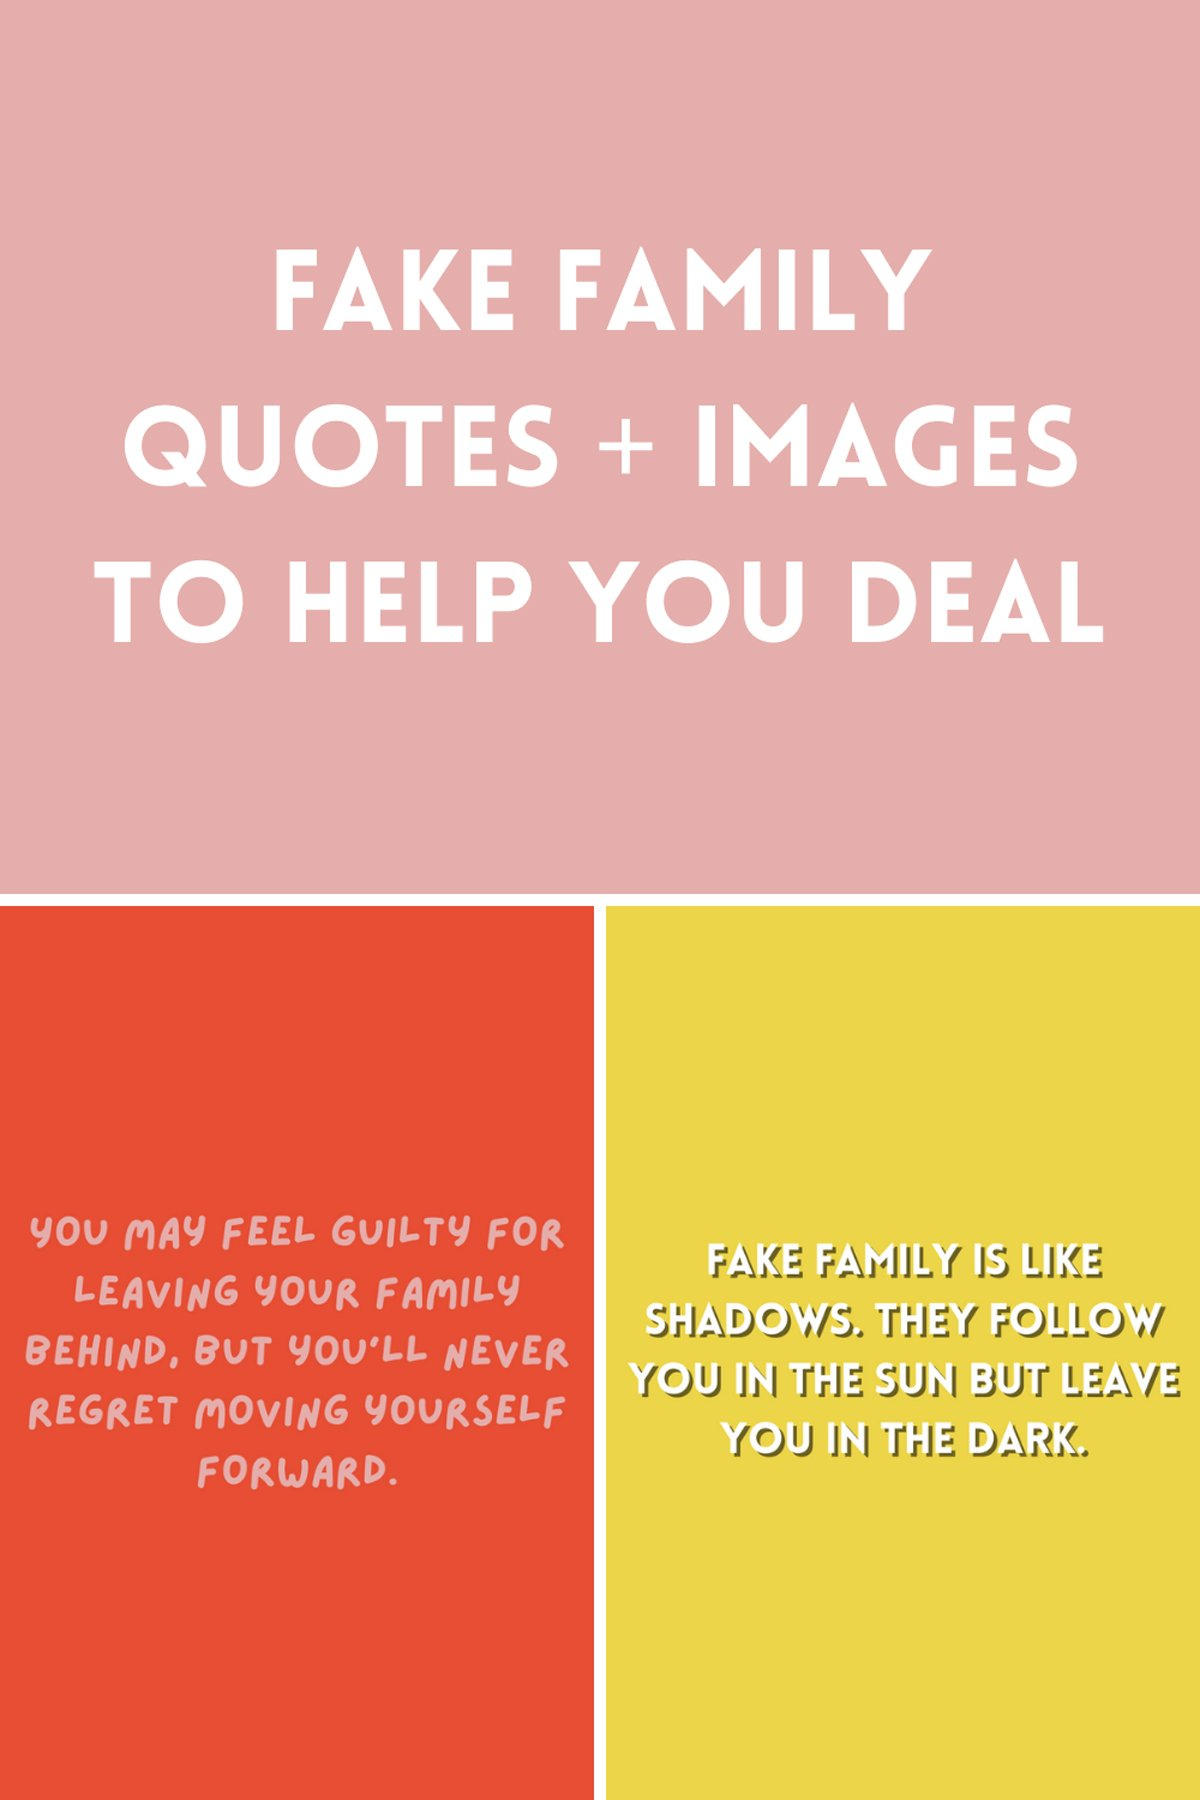 Fake Family Quotes and Images